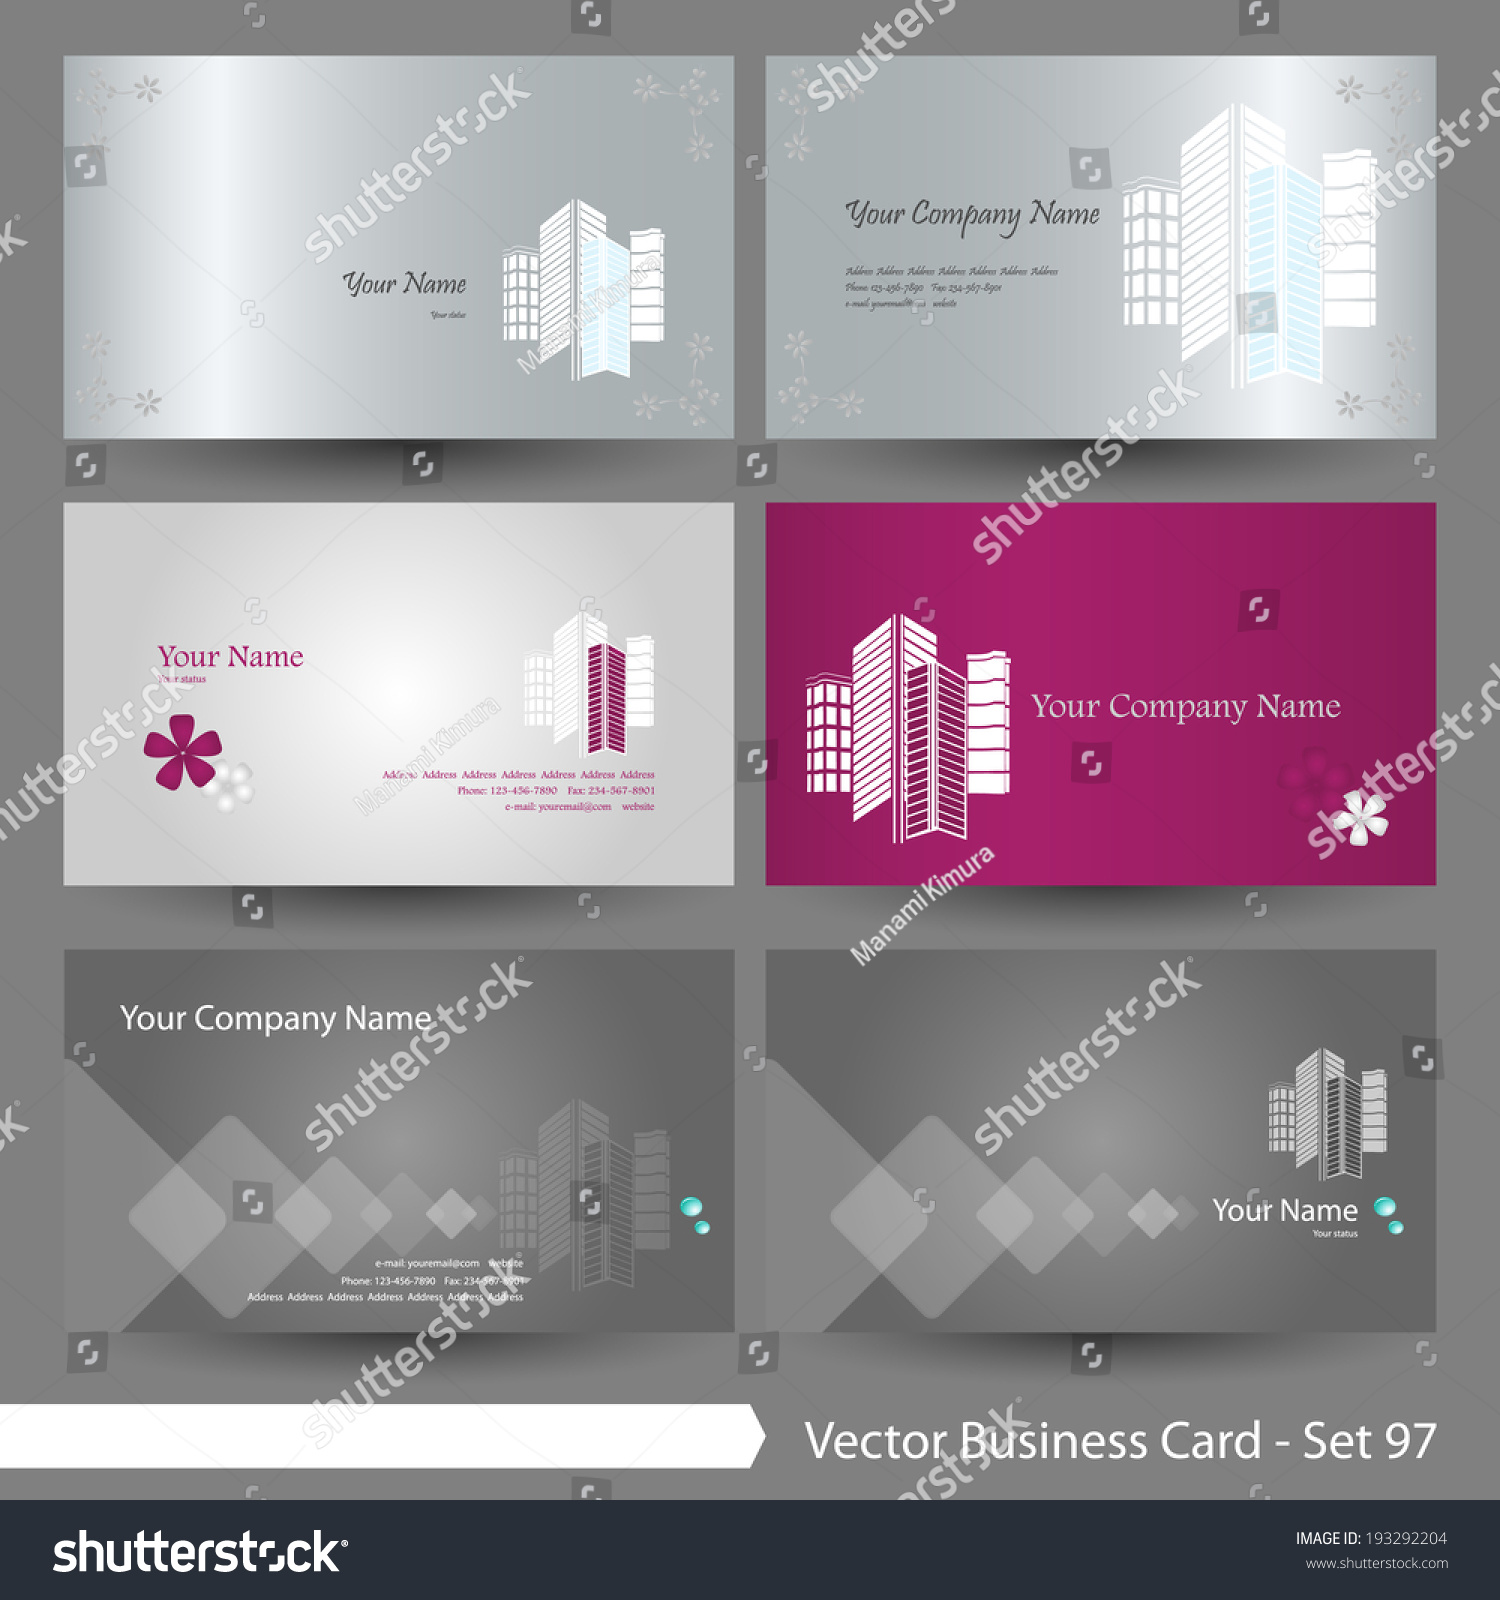 Vector Business Card Template Set Real Stock Photo (Photo, Vector ...